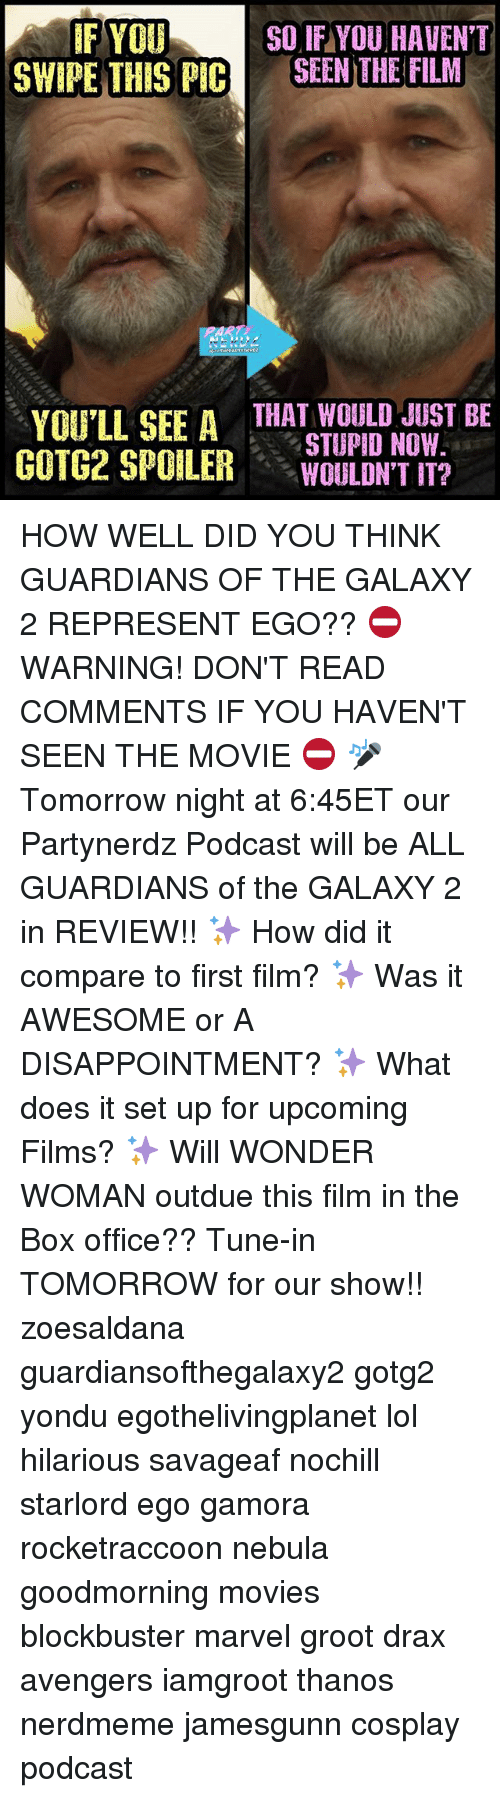 yondu: IF YOU  SO IF YOU HAVENT  SWIPE THIS PIC  SEEN THE FILM  YOU'LL SEE A  THAT BE  STUPID NOW.  GOTG2 SPOILER  WOULDN'T IT? HOW WELL DID YOU THINK GUARDIANS OF THE GALAXY 2 REPRESENT EGO?? ⛔WARNING! DON'T READ COMMENTS IF YOU HAVEN'T SEEN THE MOVIE ⛔ 🎤Tomorrow night at 6:45ET our Partynerdz Podcast will be ALL GUARDIANS of the GALAXY 2 in REVIEW!! ✨ How did it compare to first film? ✨ Was it AWESOME or A DISAPPOINTMENT? ✨ What does it set up for upcoming Films? ✨ Will WONDER WOMAN outdue this film in the Box office?? Tune-in TOMORROW for our show!! zoesaldana guardiansofthegalaxy2 gotg2 yondu egothelivingplanet lol hilarious savageaf nochill starlord ego gamora rocketraccoon nebula goodmorning movies blockbuster marvel groot drax avengers iamgroot thanos nerdmeme jamesgunn cosplay podcast